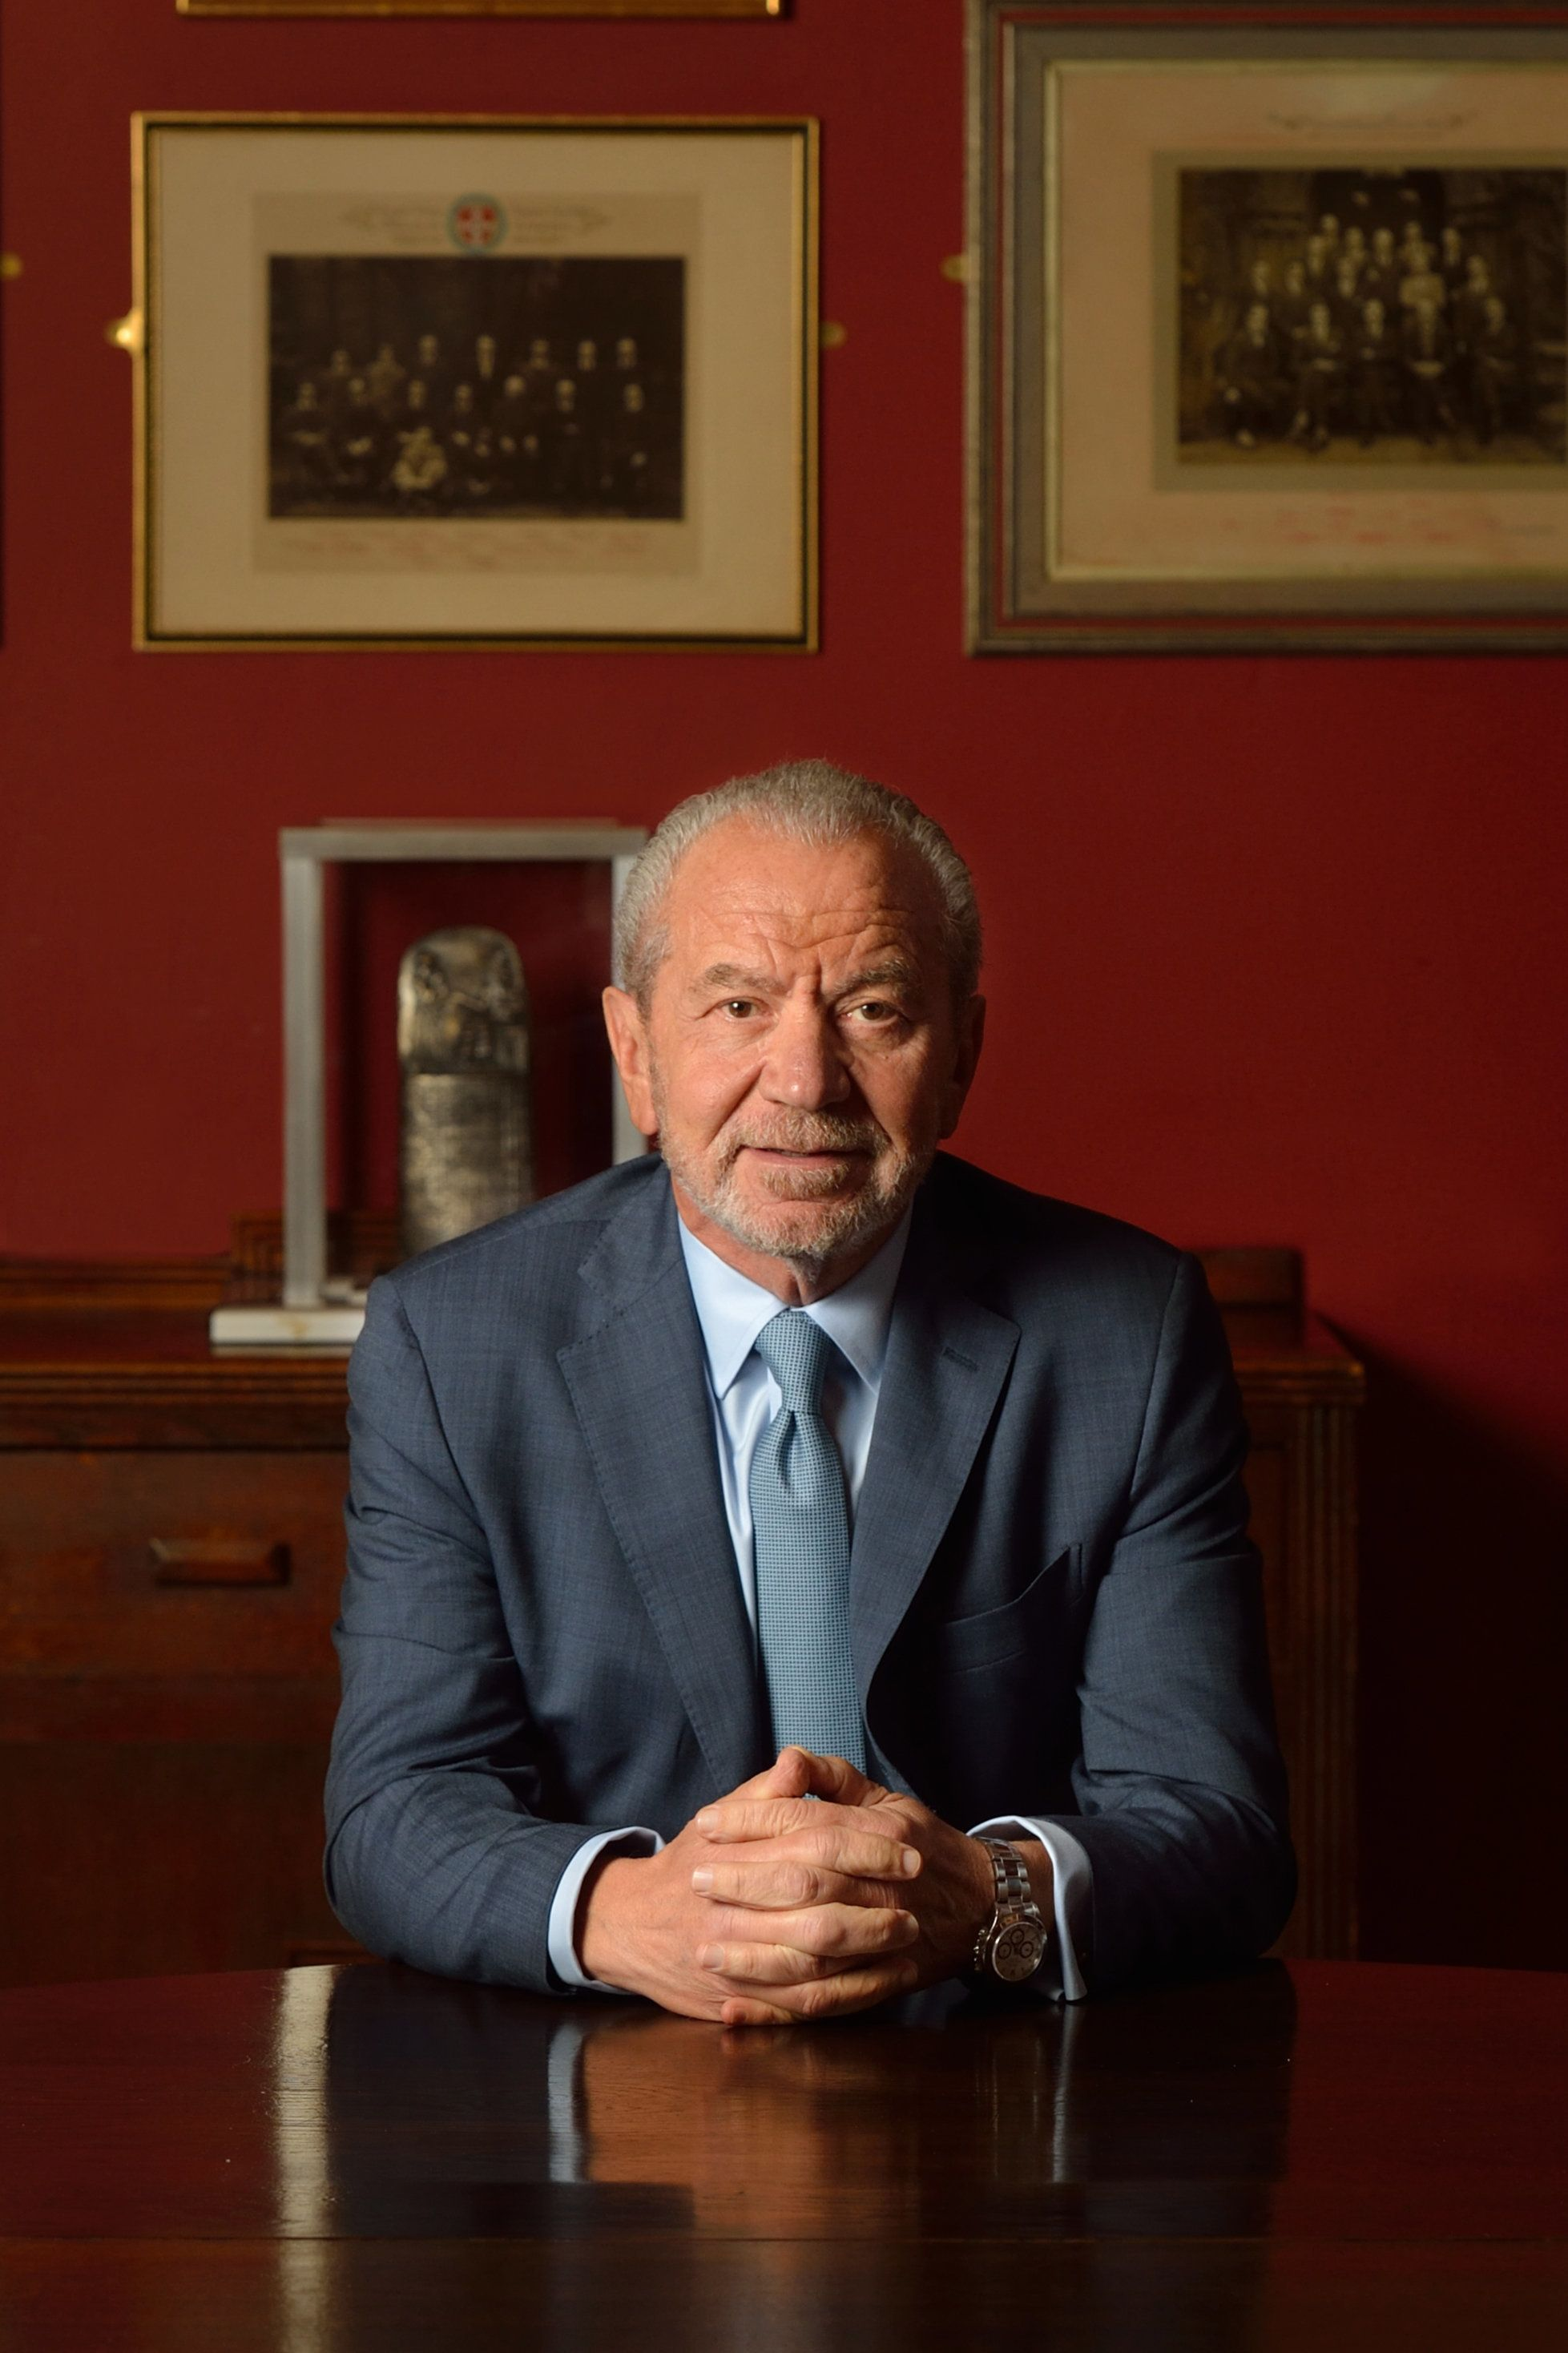 Alan Sugar Clarifies Tweet About 'Puffs In His Boardroom' After Facing